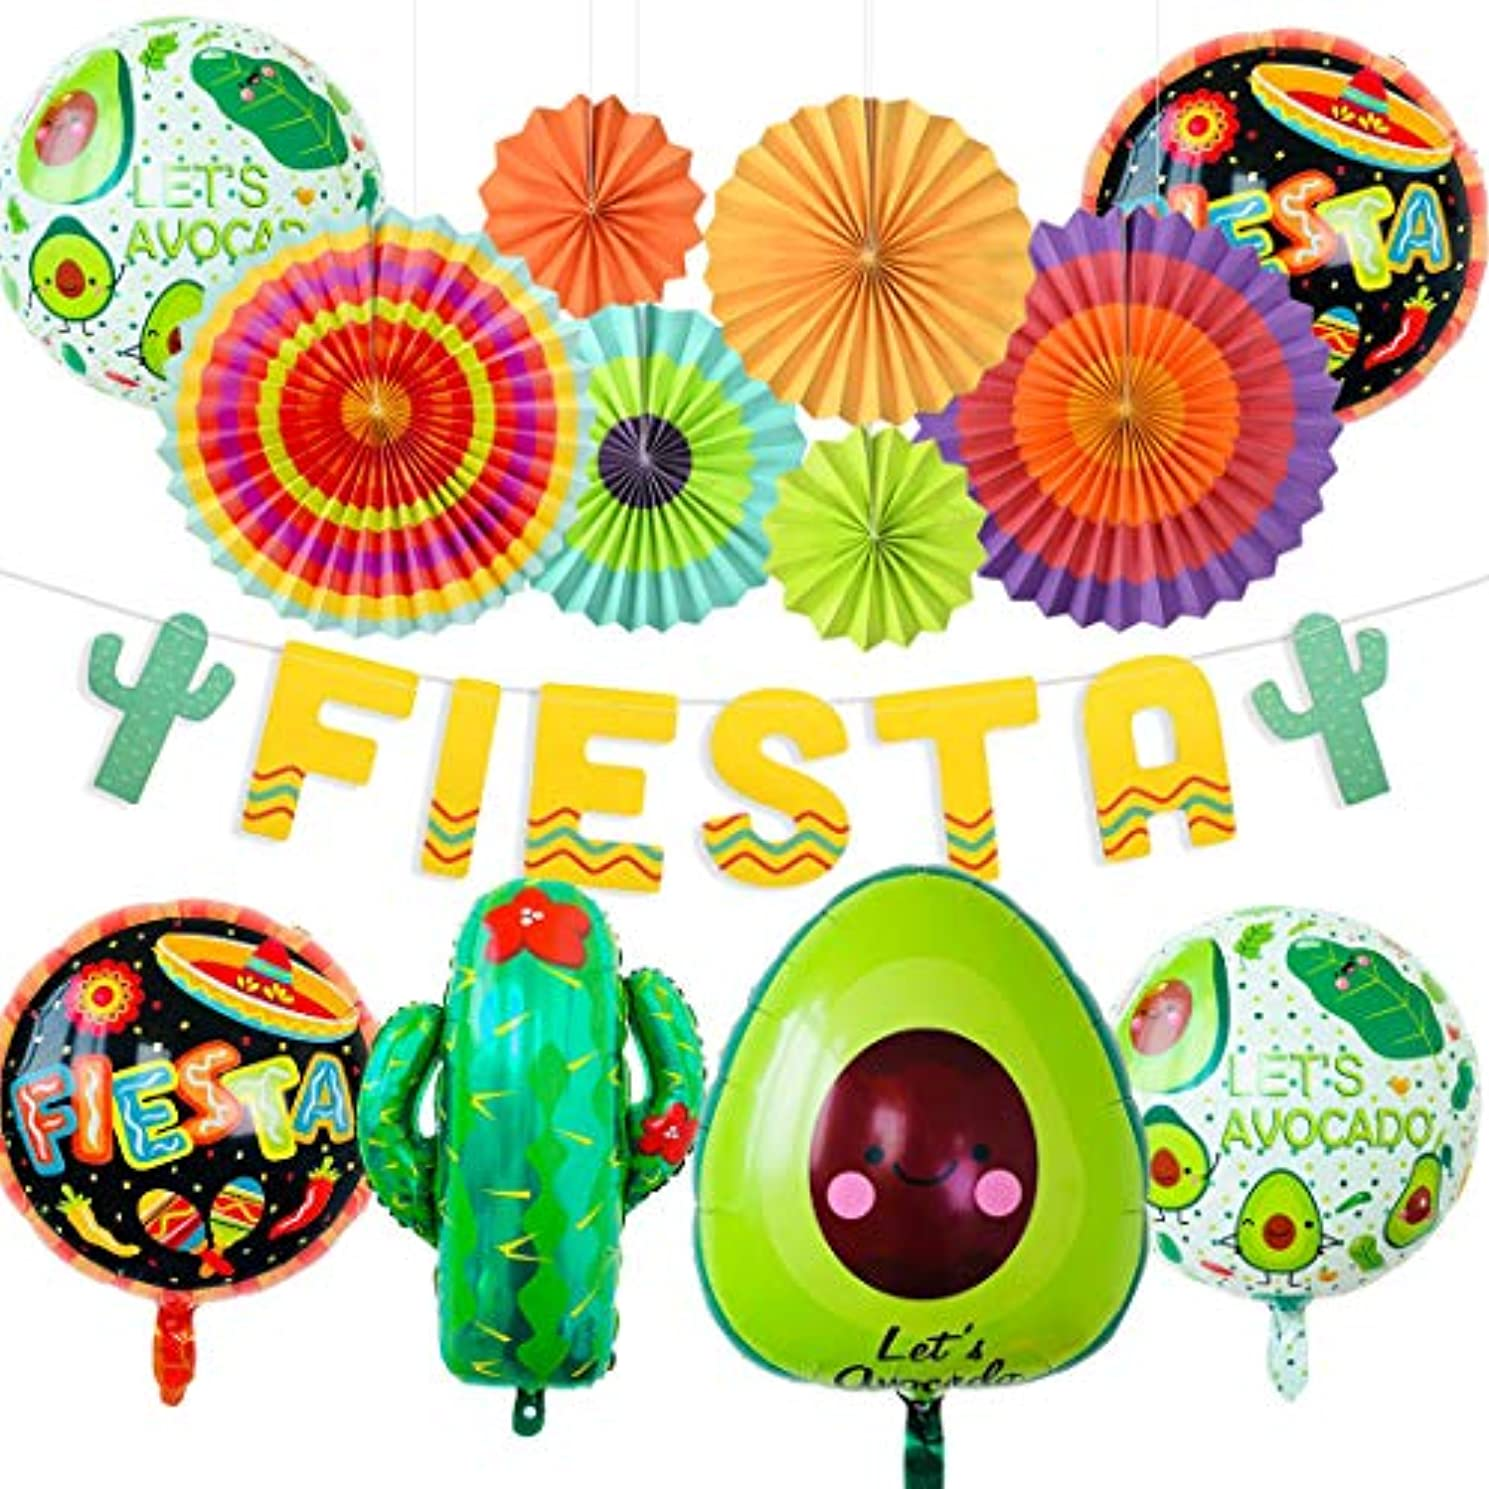 JOYMEMO Fiesta Party Decorations Pack Cinco De Mayo Decorations Hanging Paper Fans Banner Cactus and Avocado Balloons for Mexican Party Supplies